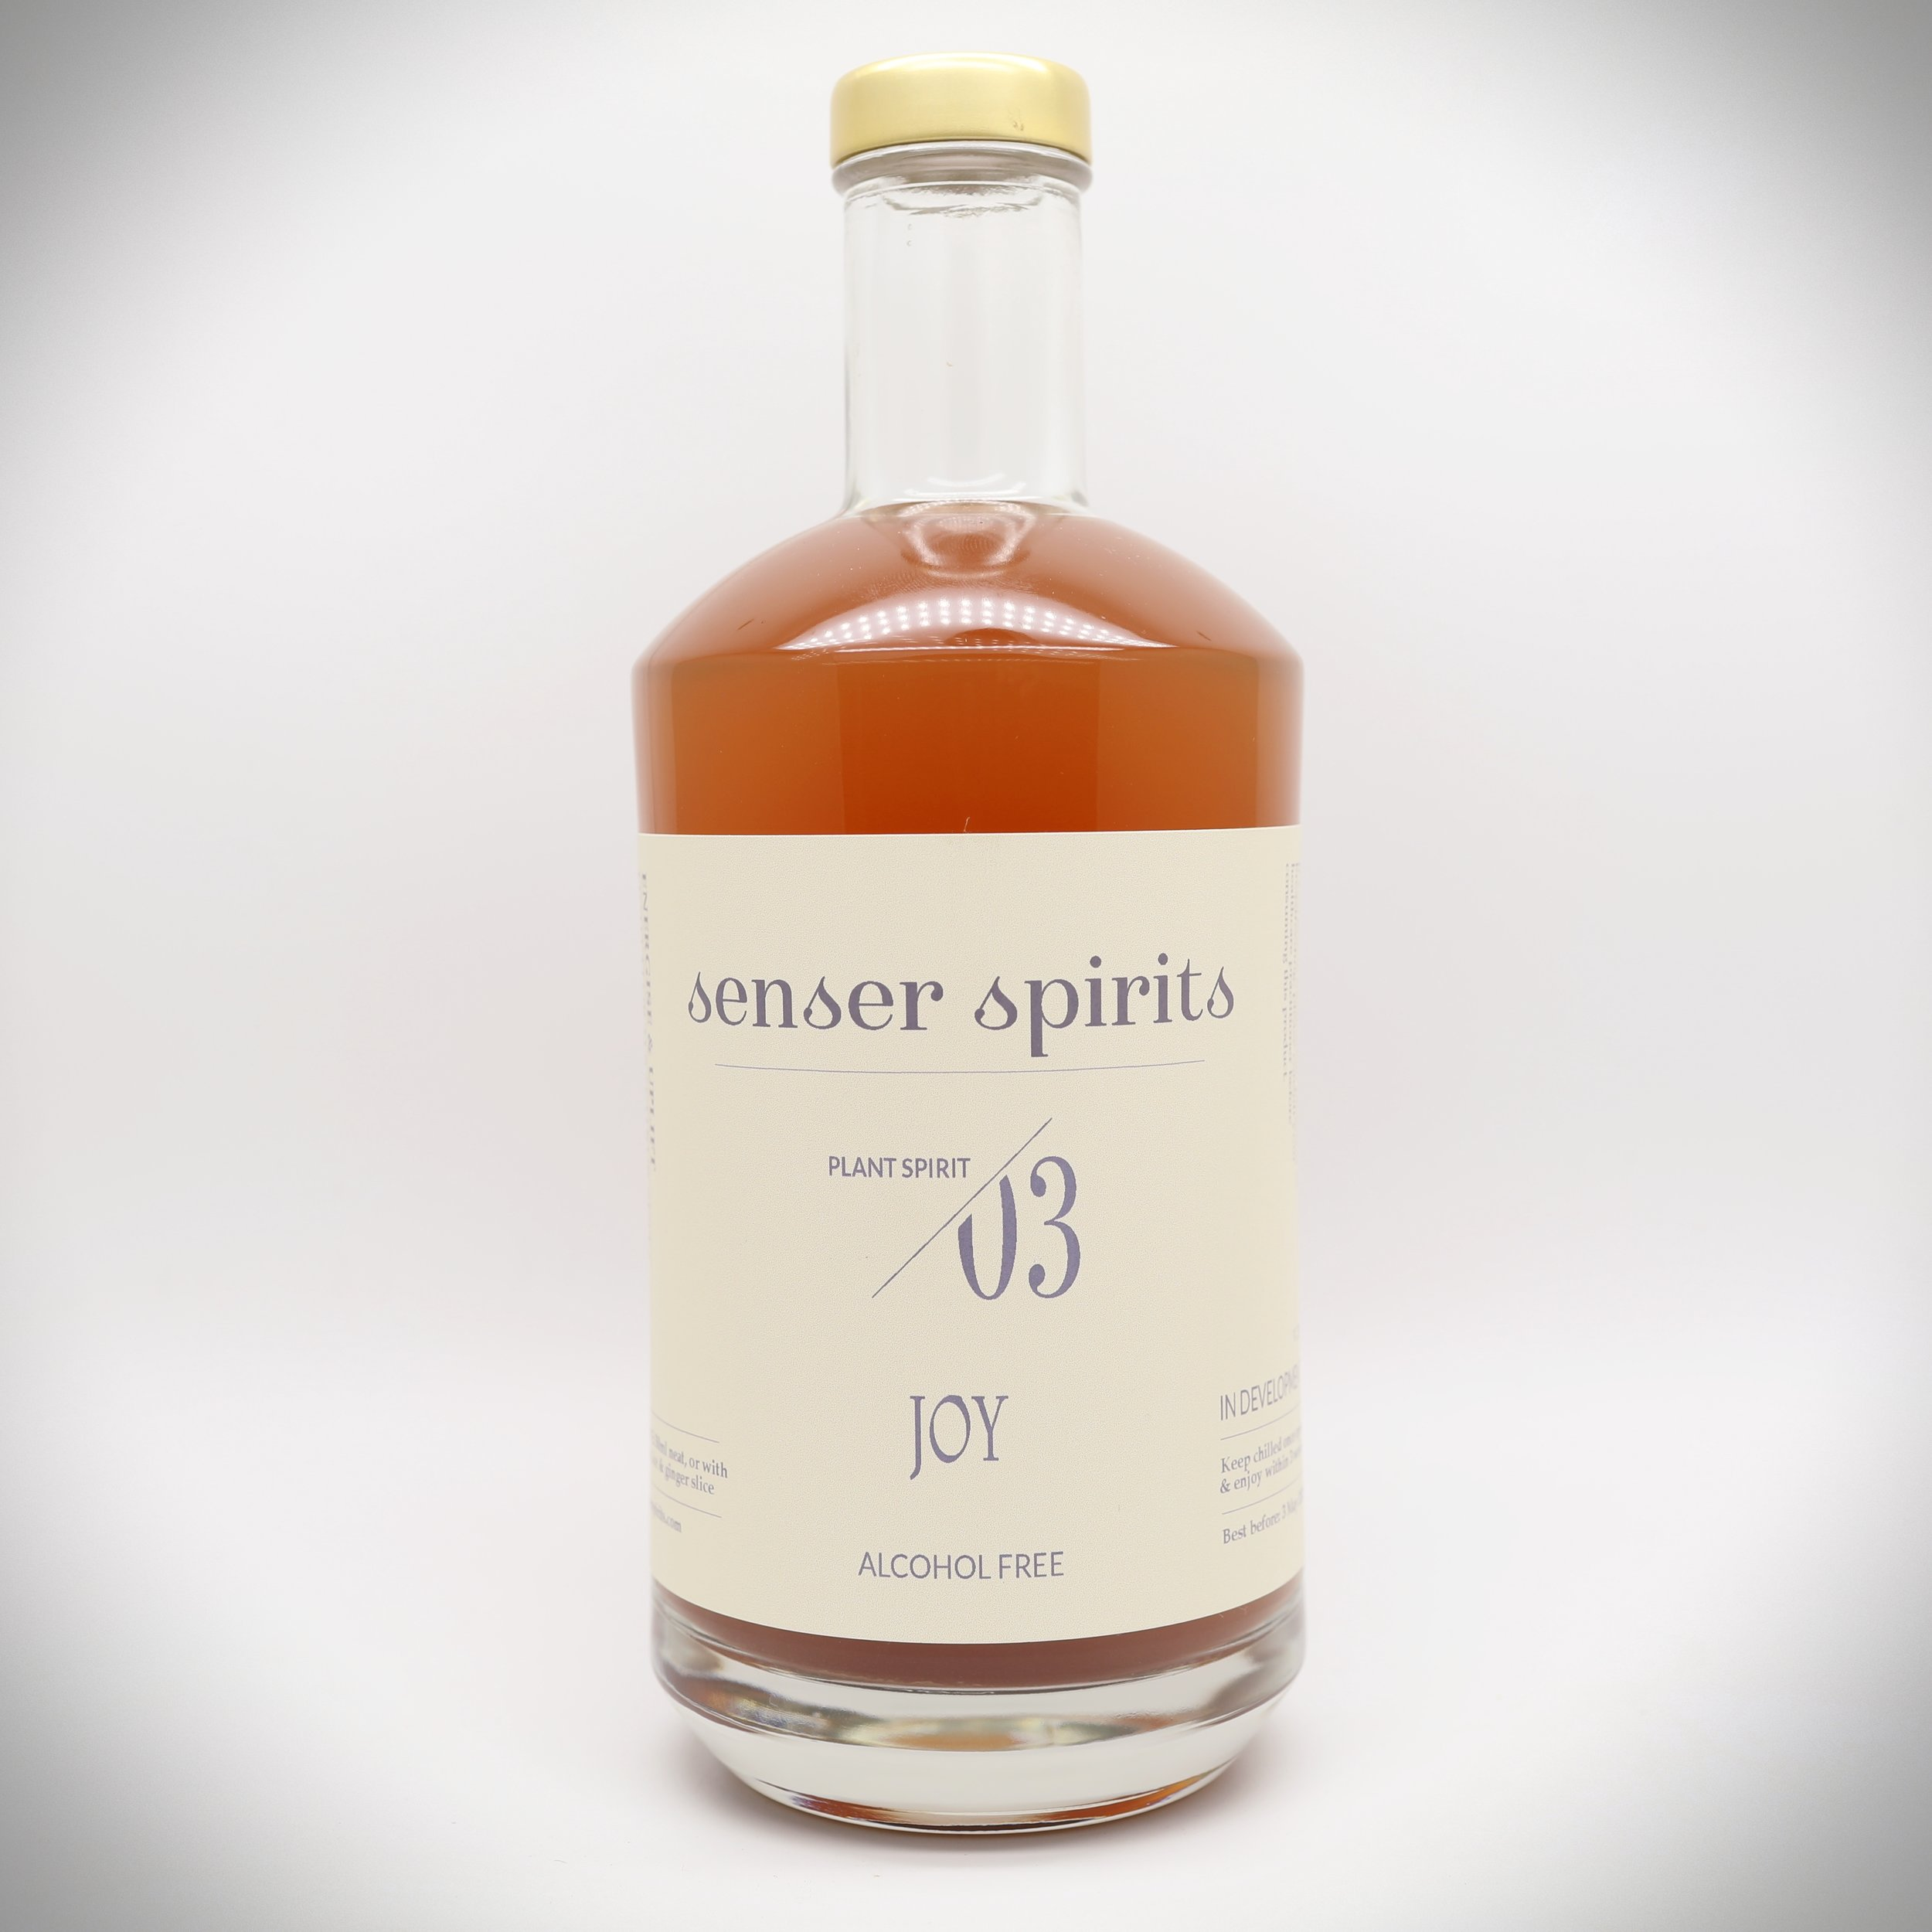 uplifting and enlivening - This joy bringer blend has delicate florals and juniper nose, followed by a light bodied citrus burst and an exuberant berry finish. A perfect party starter and spirit raiser.